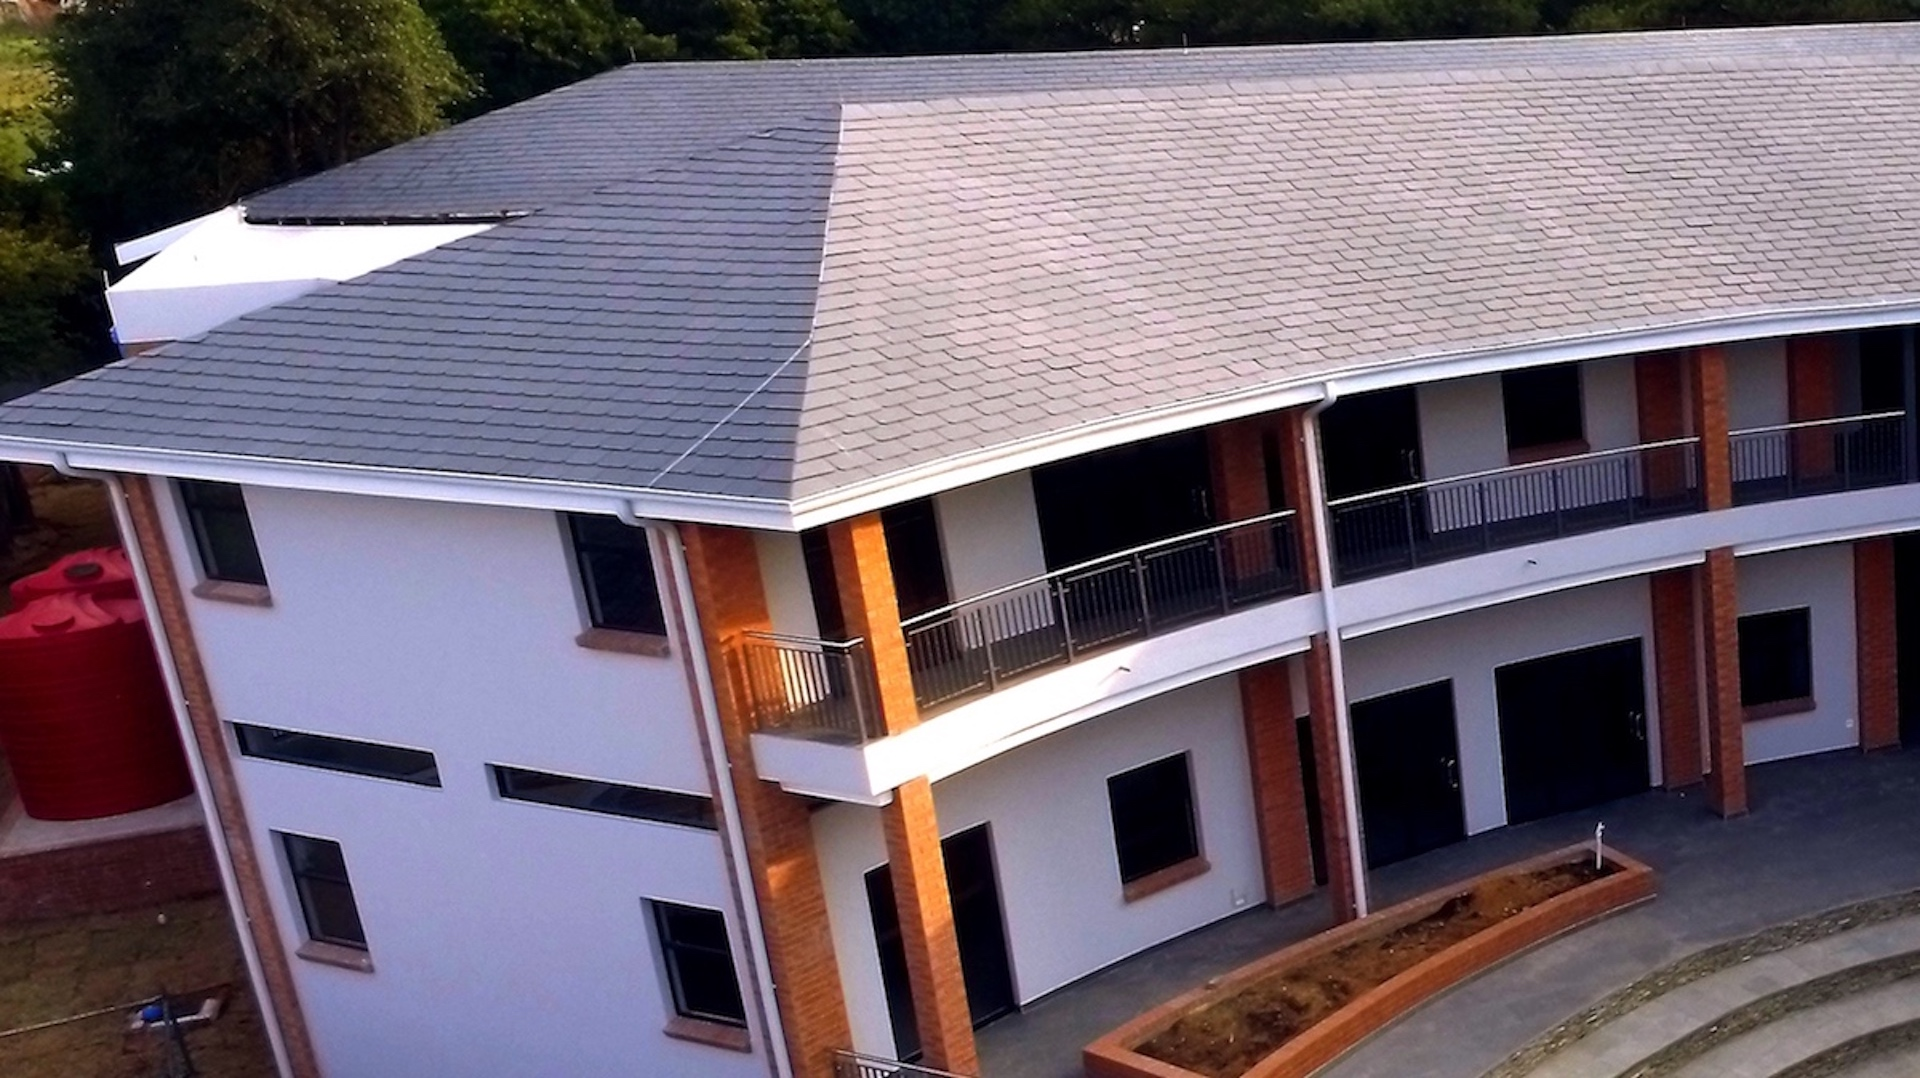 Tiles Nutec_Slate_Roofing_Completed_DJI0049